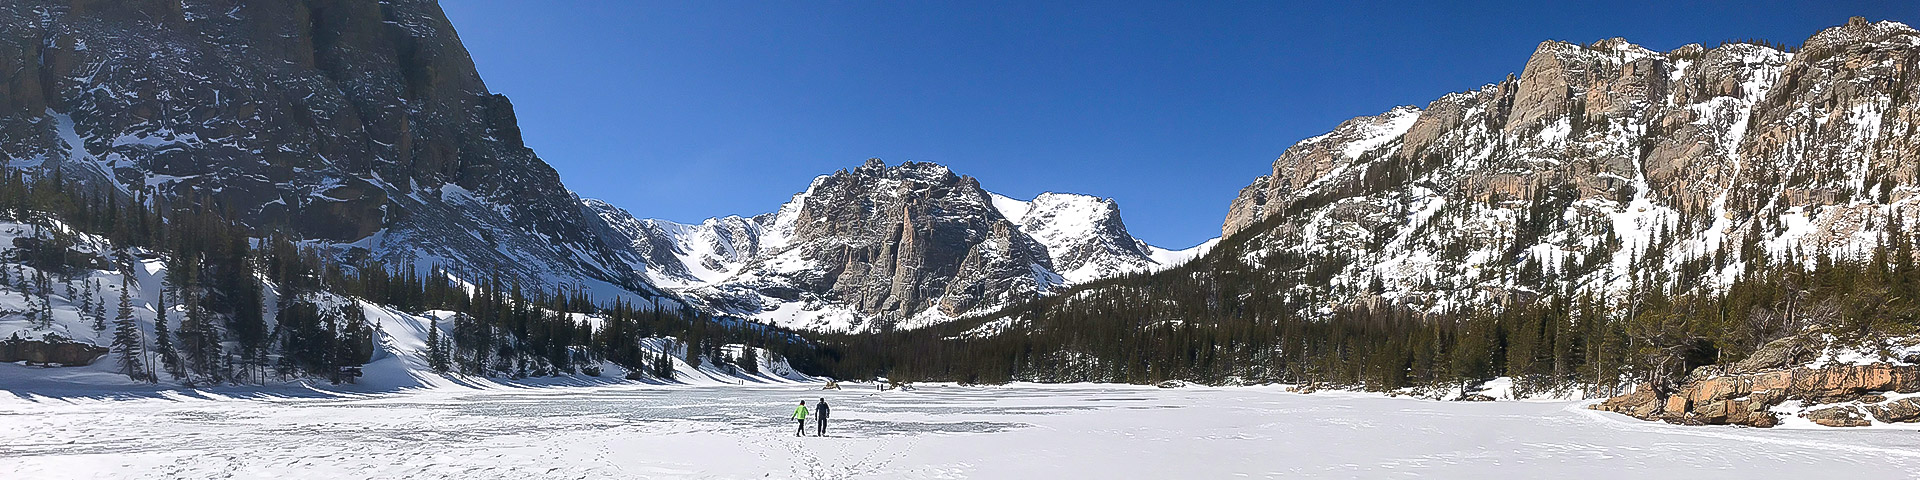 Panorama of The Loch snowshoe trail in Rocky Mountain National Park, Colorado